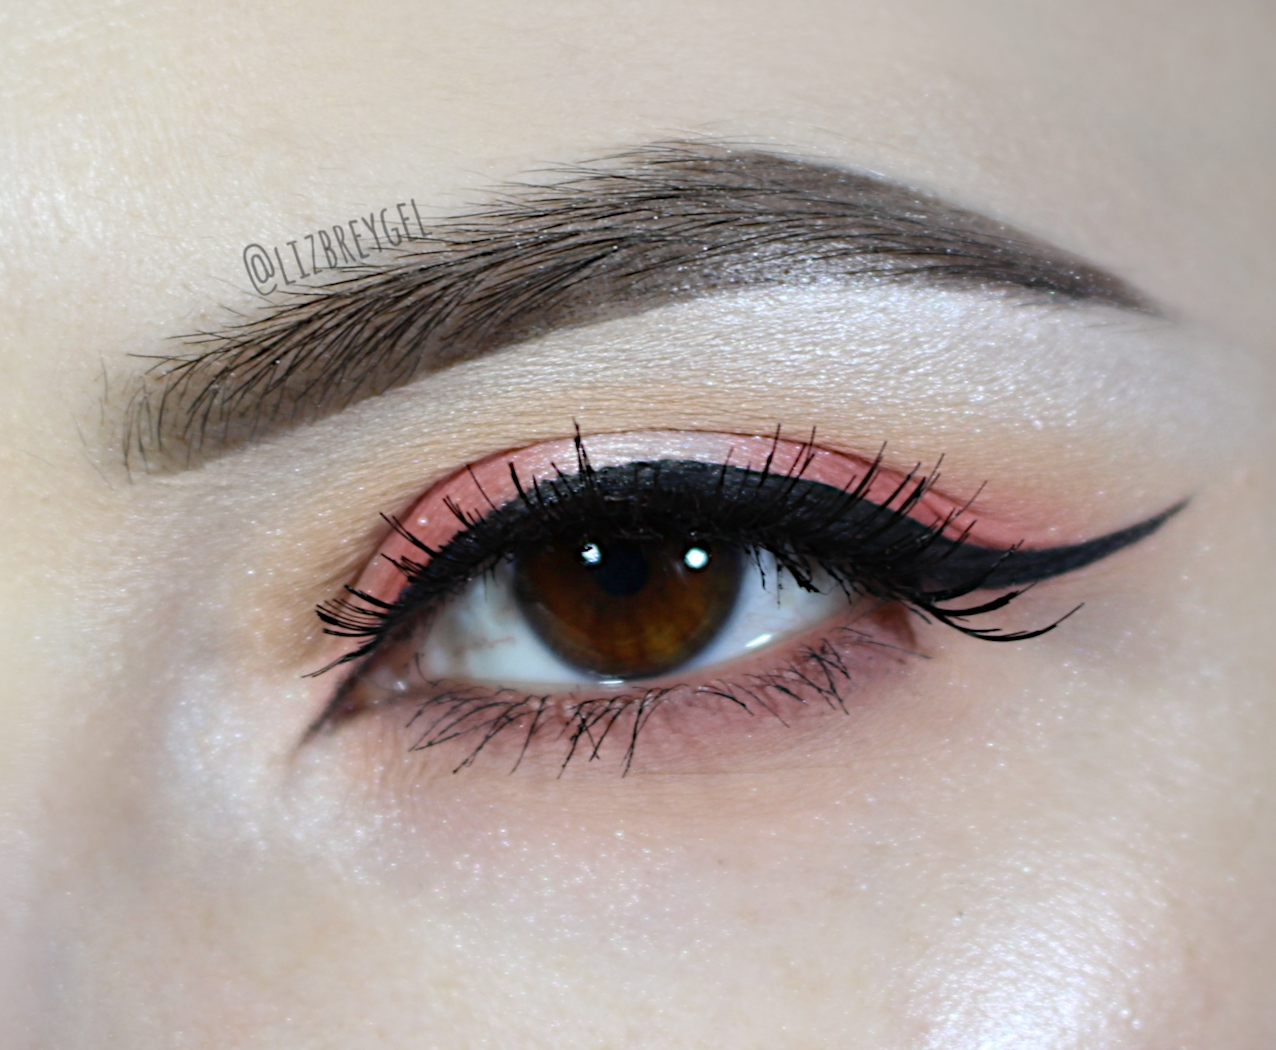 festive new year eye makeup look tangerine orange blushing living coral eye inspired by pantone 2018 color of a year